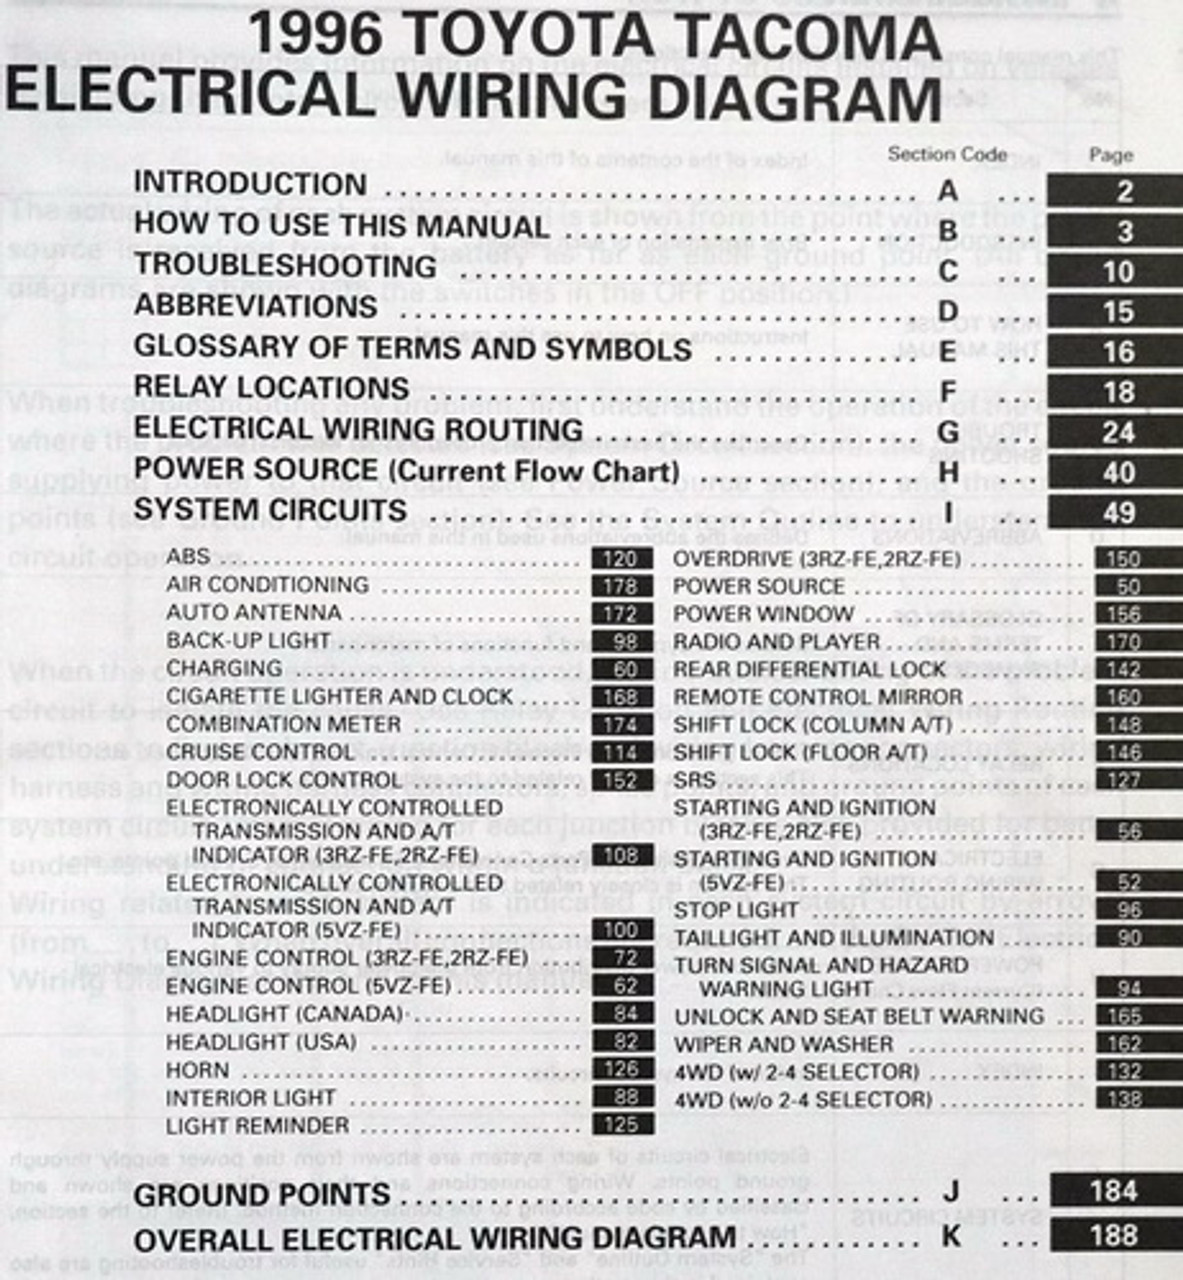 1996 Toyota Tacoma Electrical Wiring Diagrams Original Factory Manual